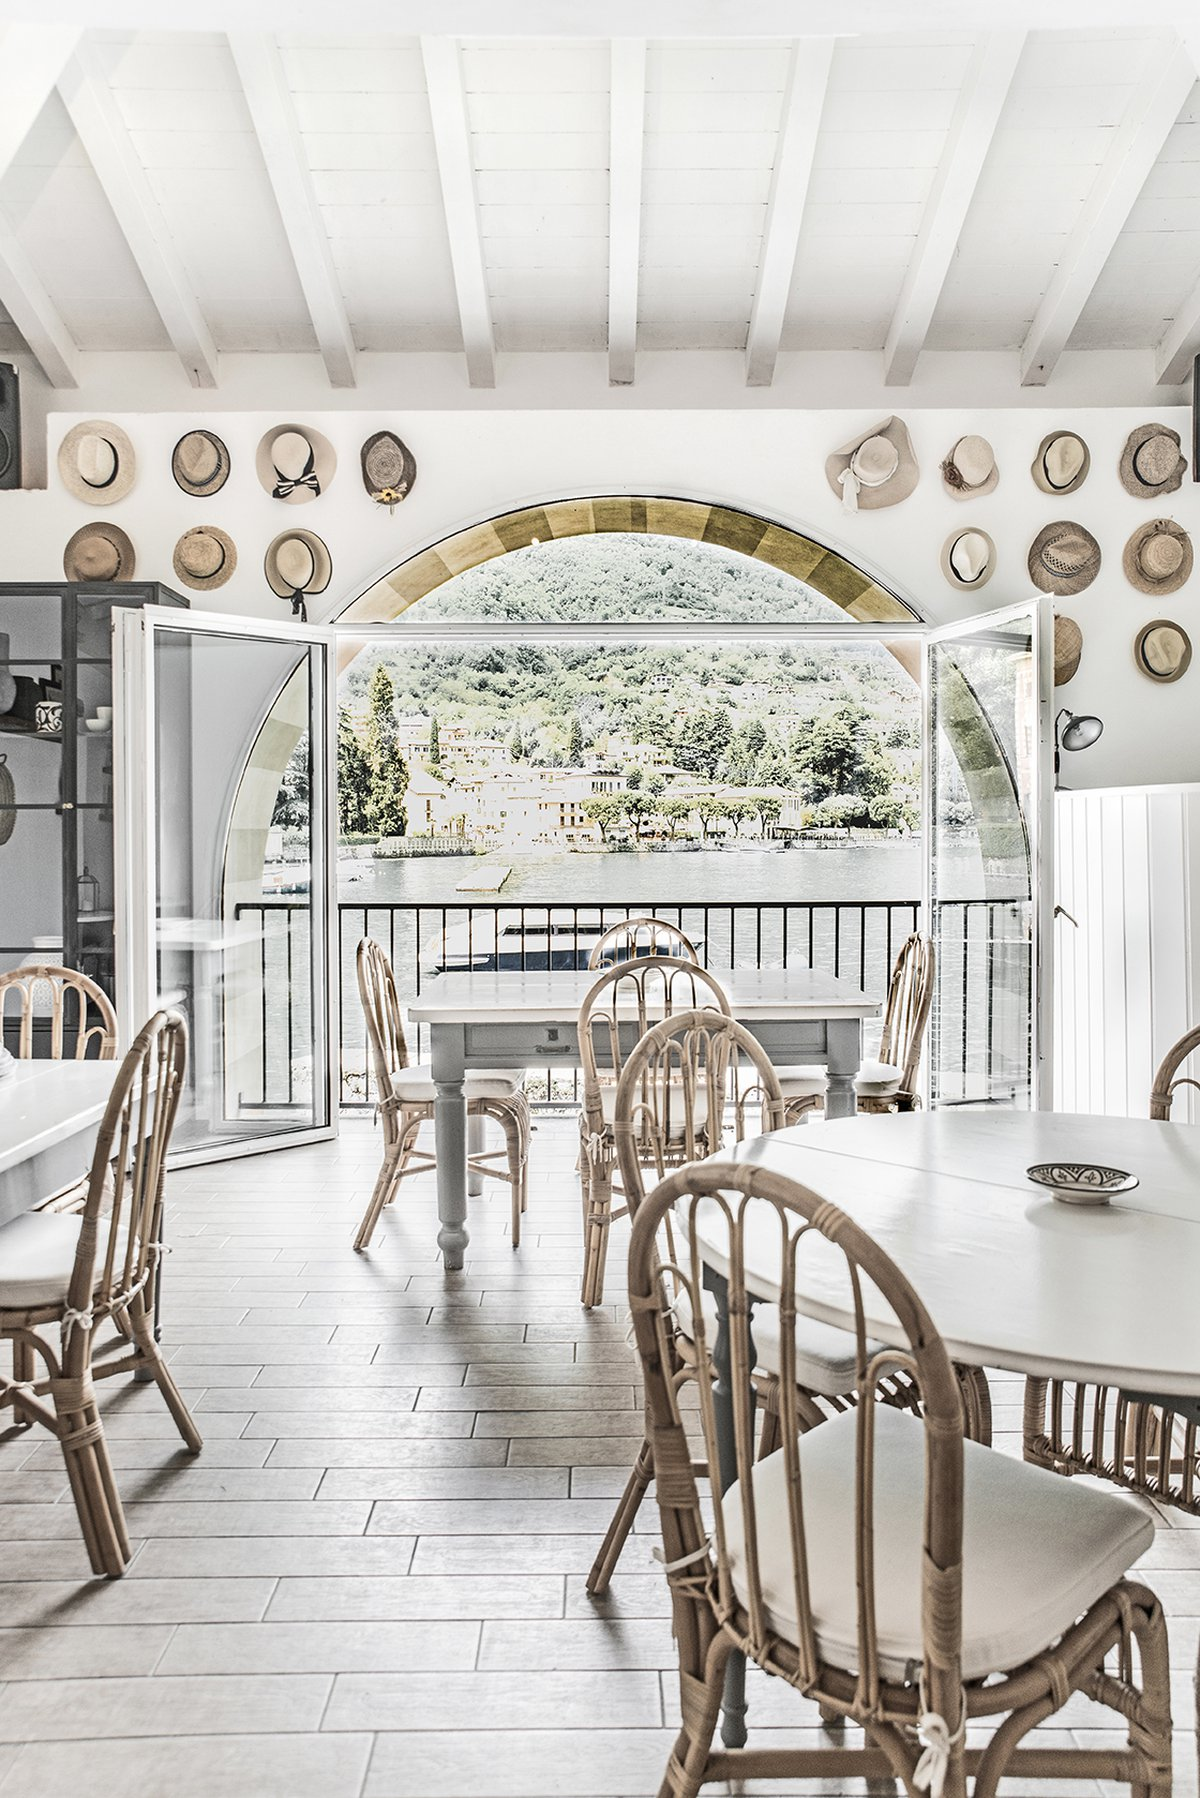 Lido Di Lenno beach bar at Lake Como, Italy decorated with tinekhome rattan furniture, dining chairs